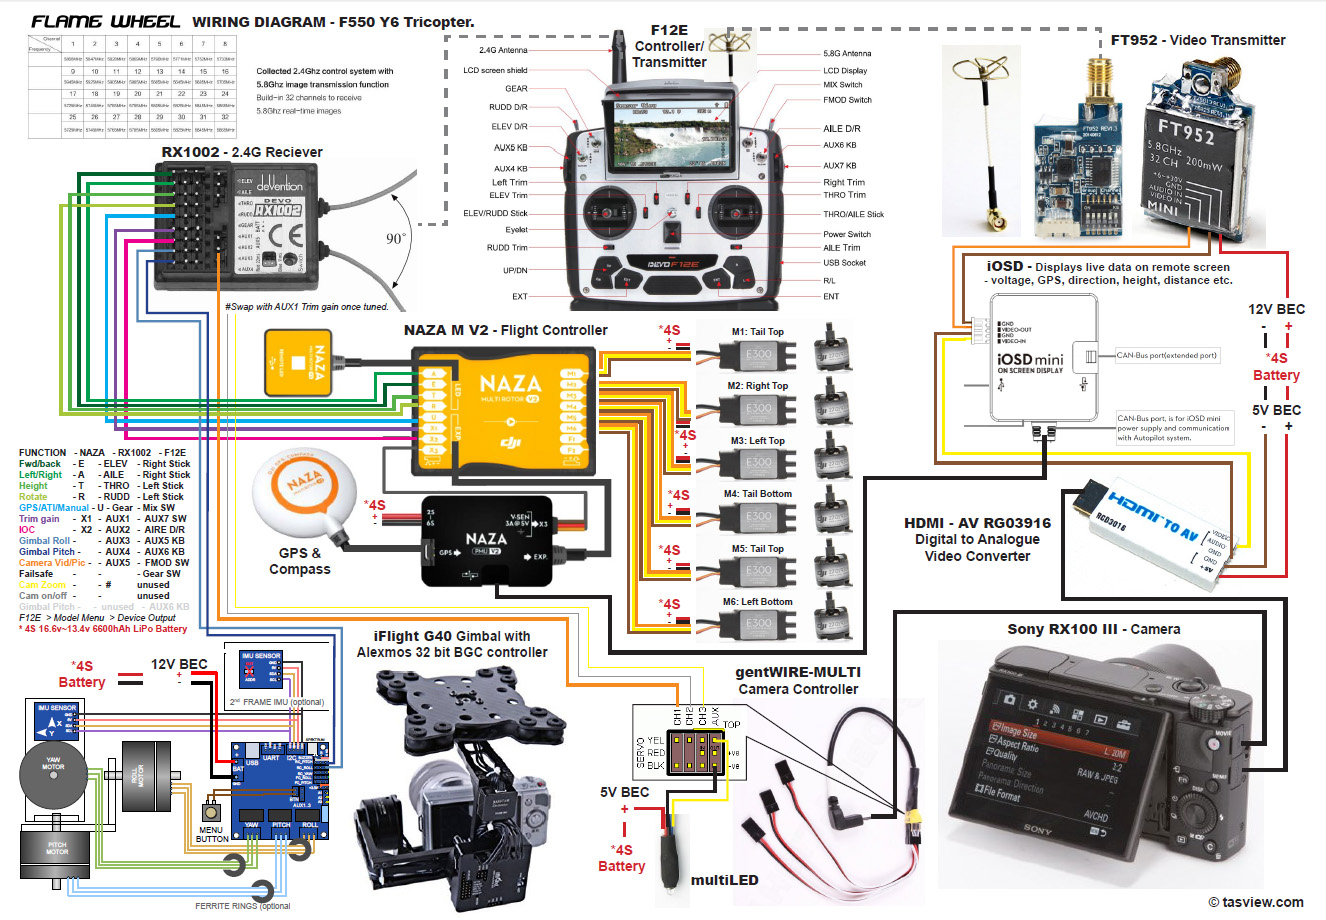 wiring_diagram f550y6?w=700 f500, rx100, g40 wiring tasview naza lite wiring diagram at cos-gaming.co